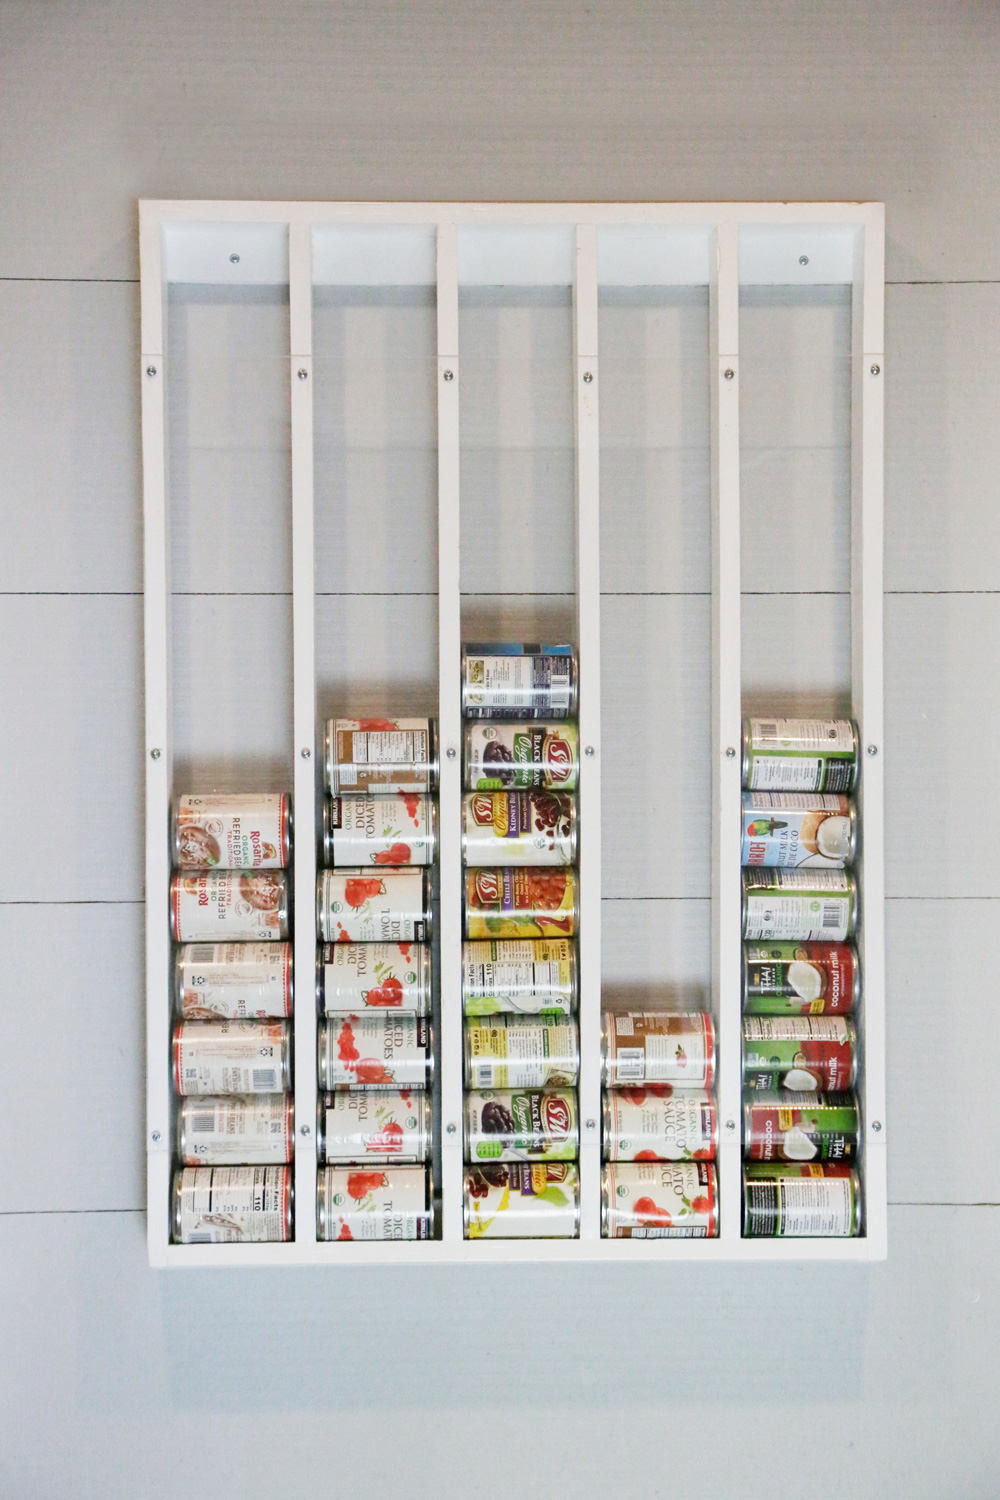 Wall Mounted Canned Food Storage : mounted, canned, storage, Mounted, Organizer, White